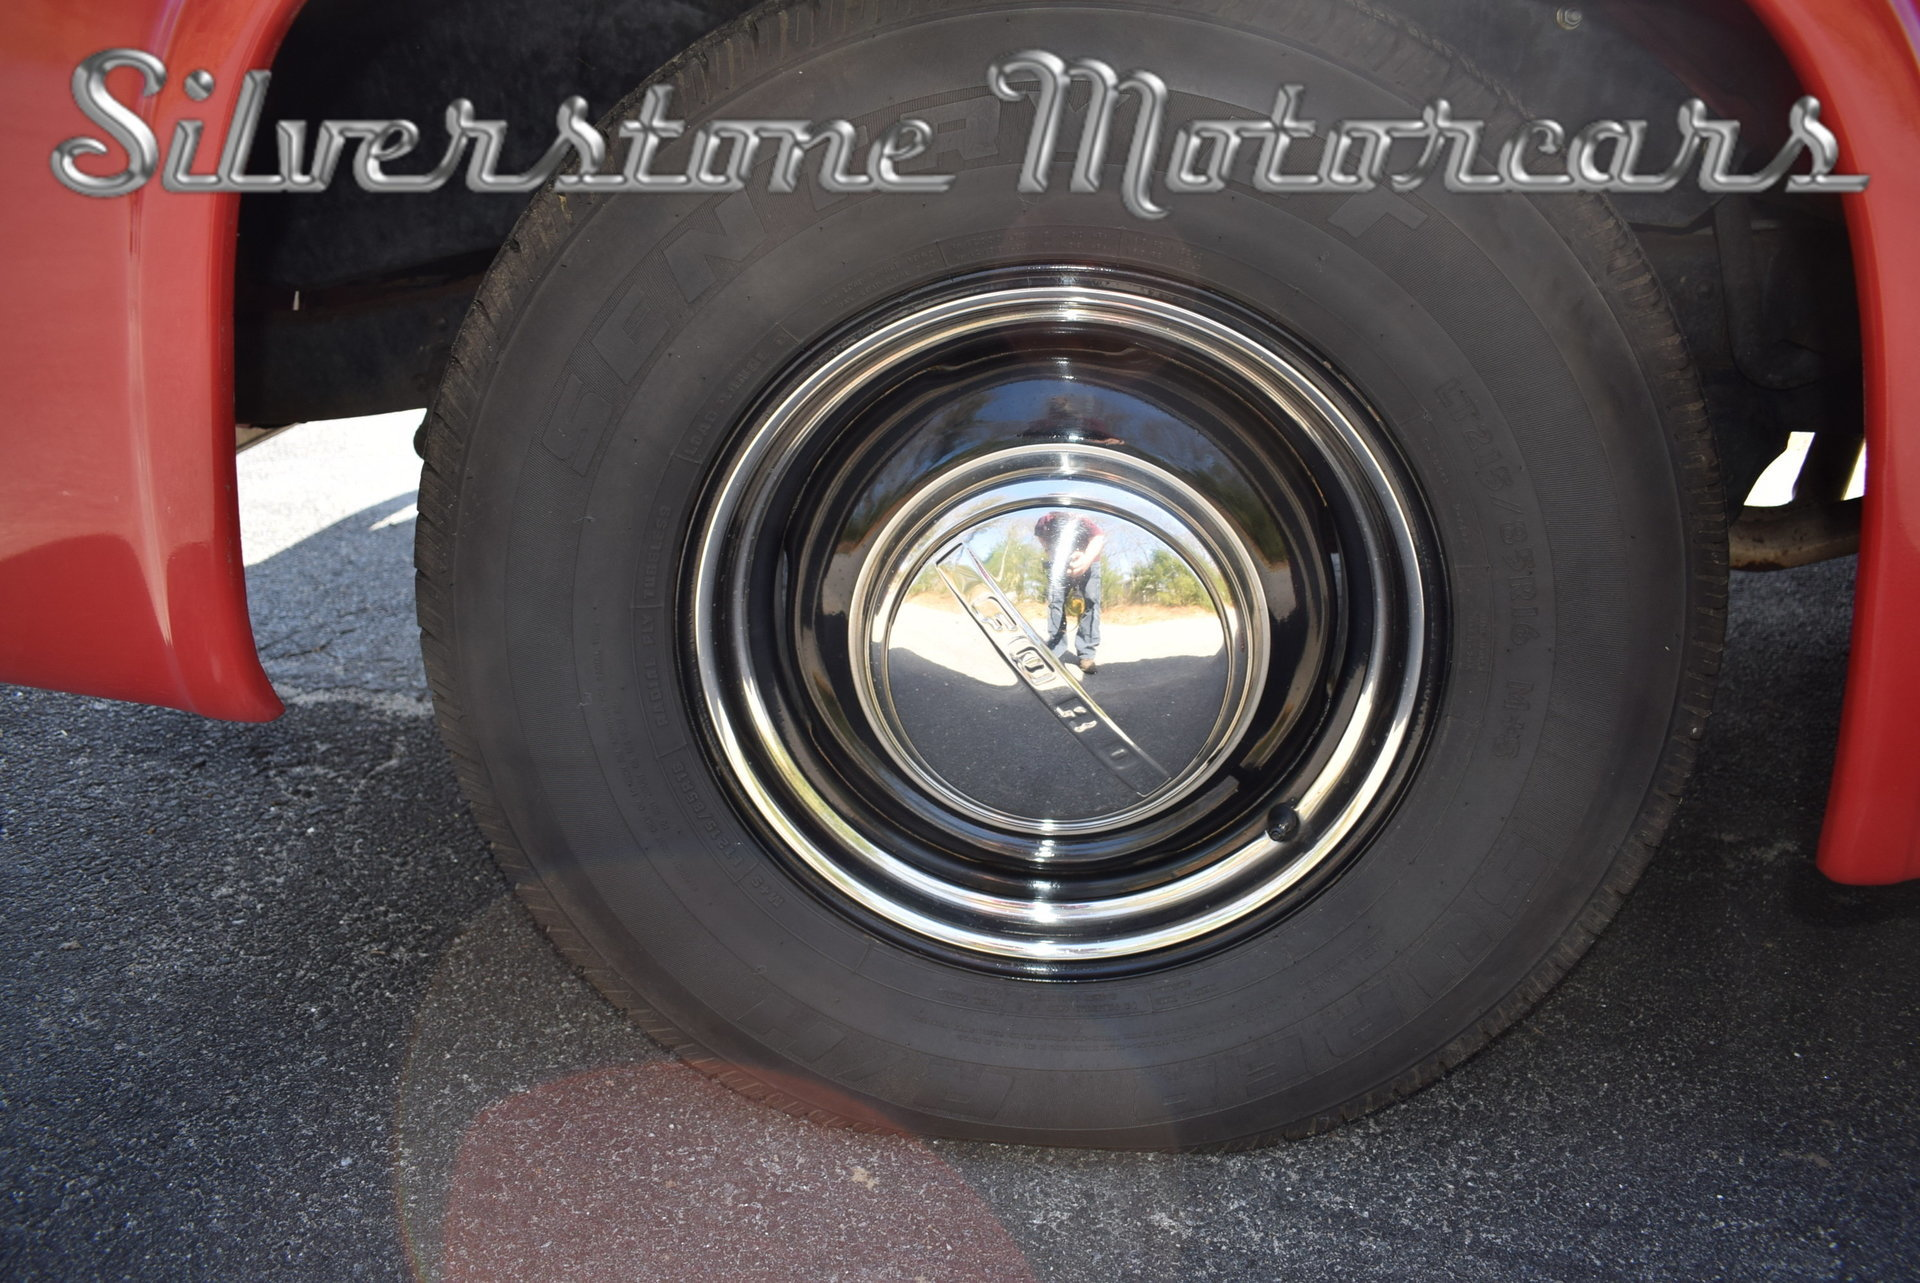 1955 Ford F100 Silverstone Motorcars Wheels